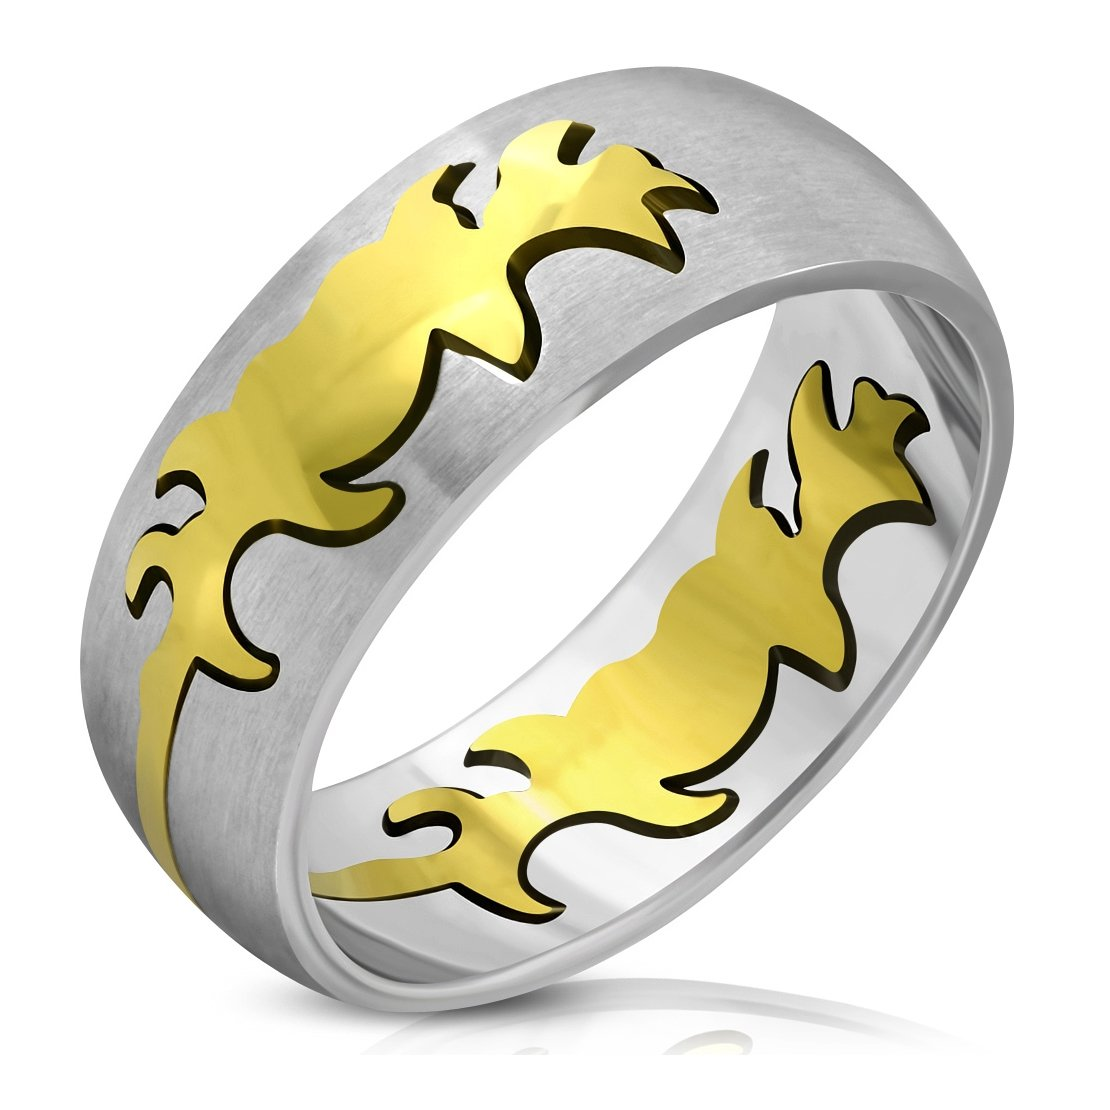 Stainless Steel Matte Finished 2 Color Butterfly Half-Round Band Ring